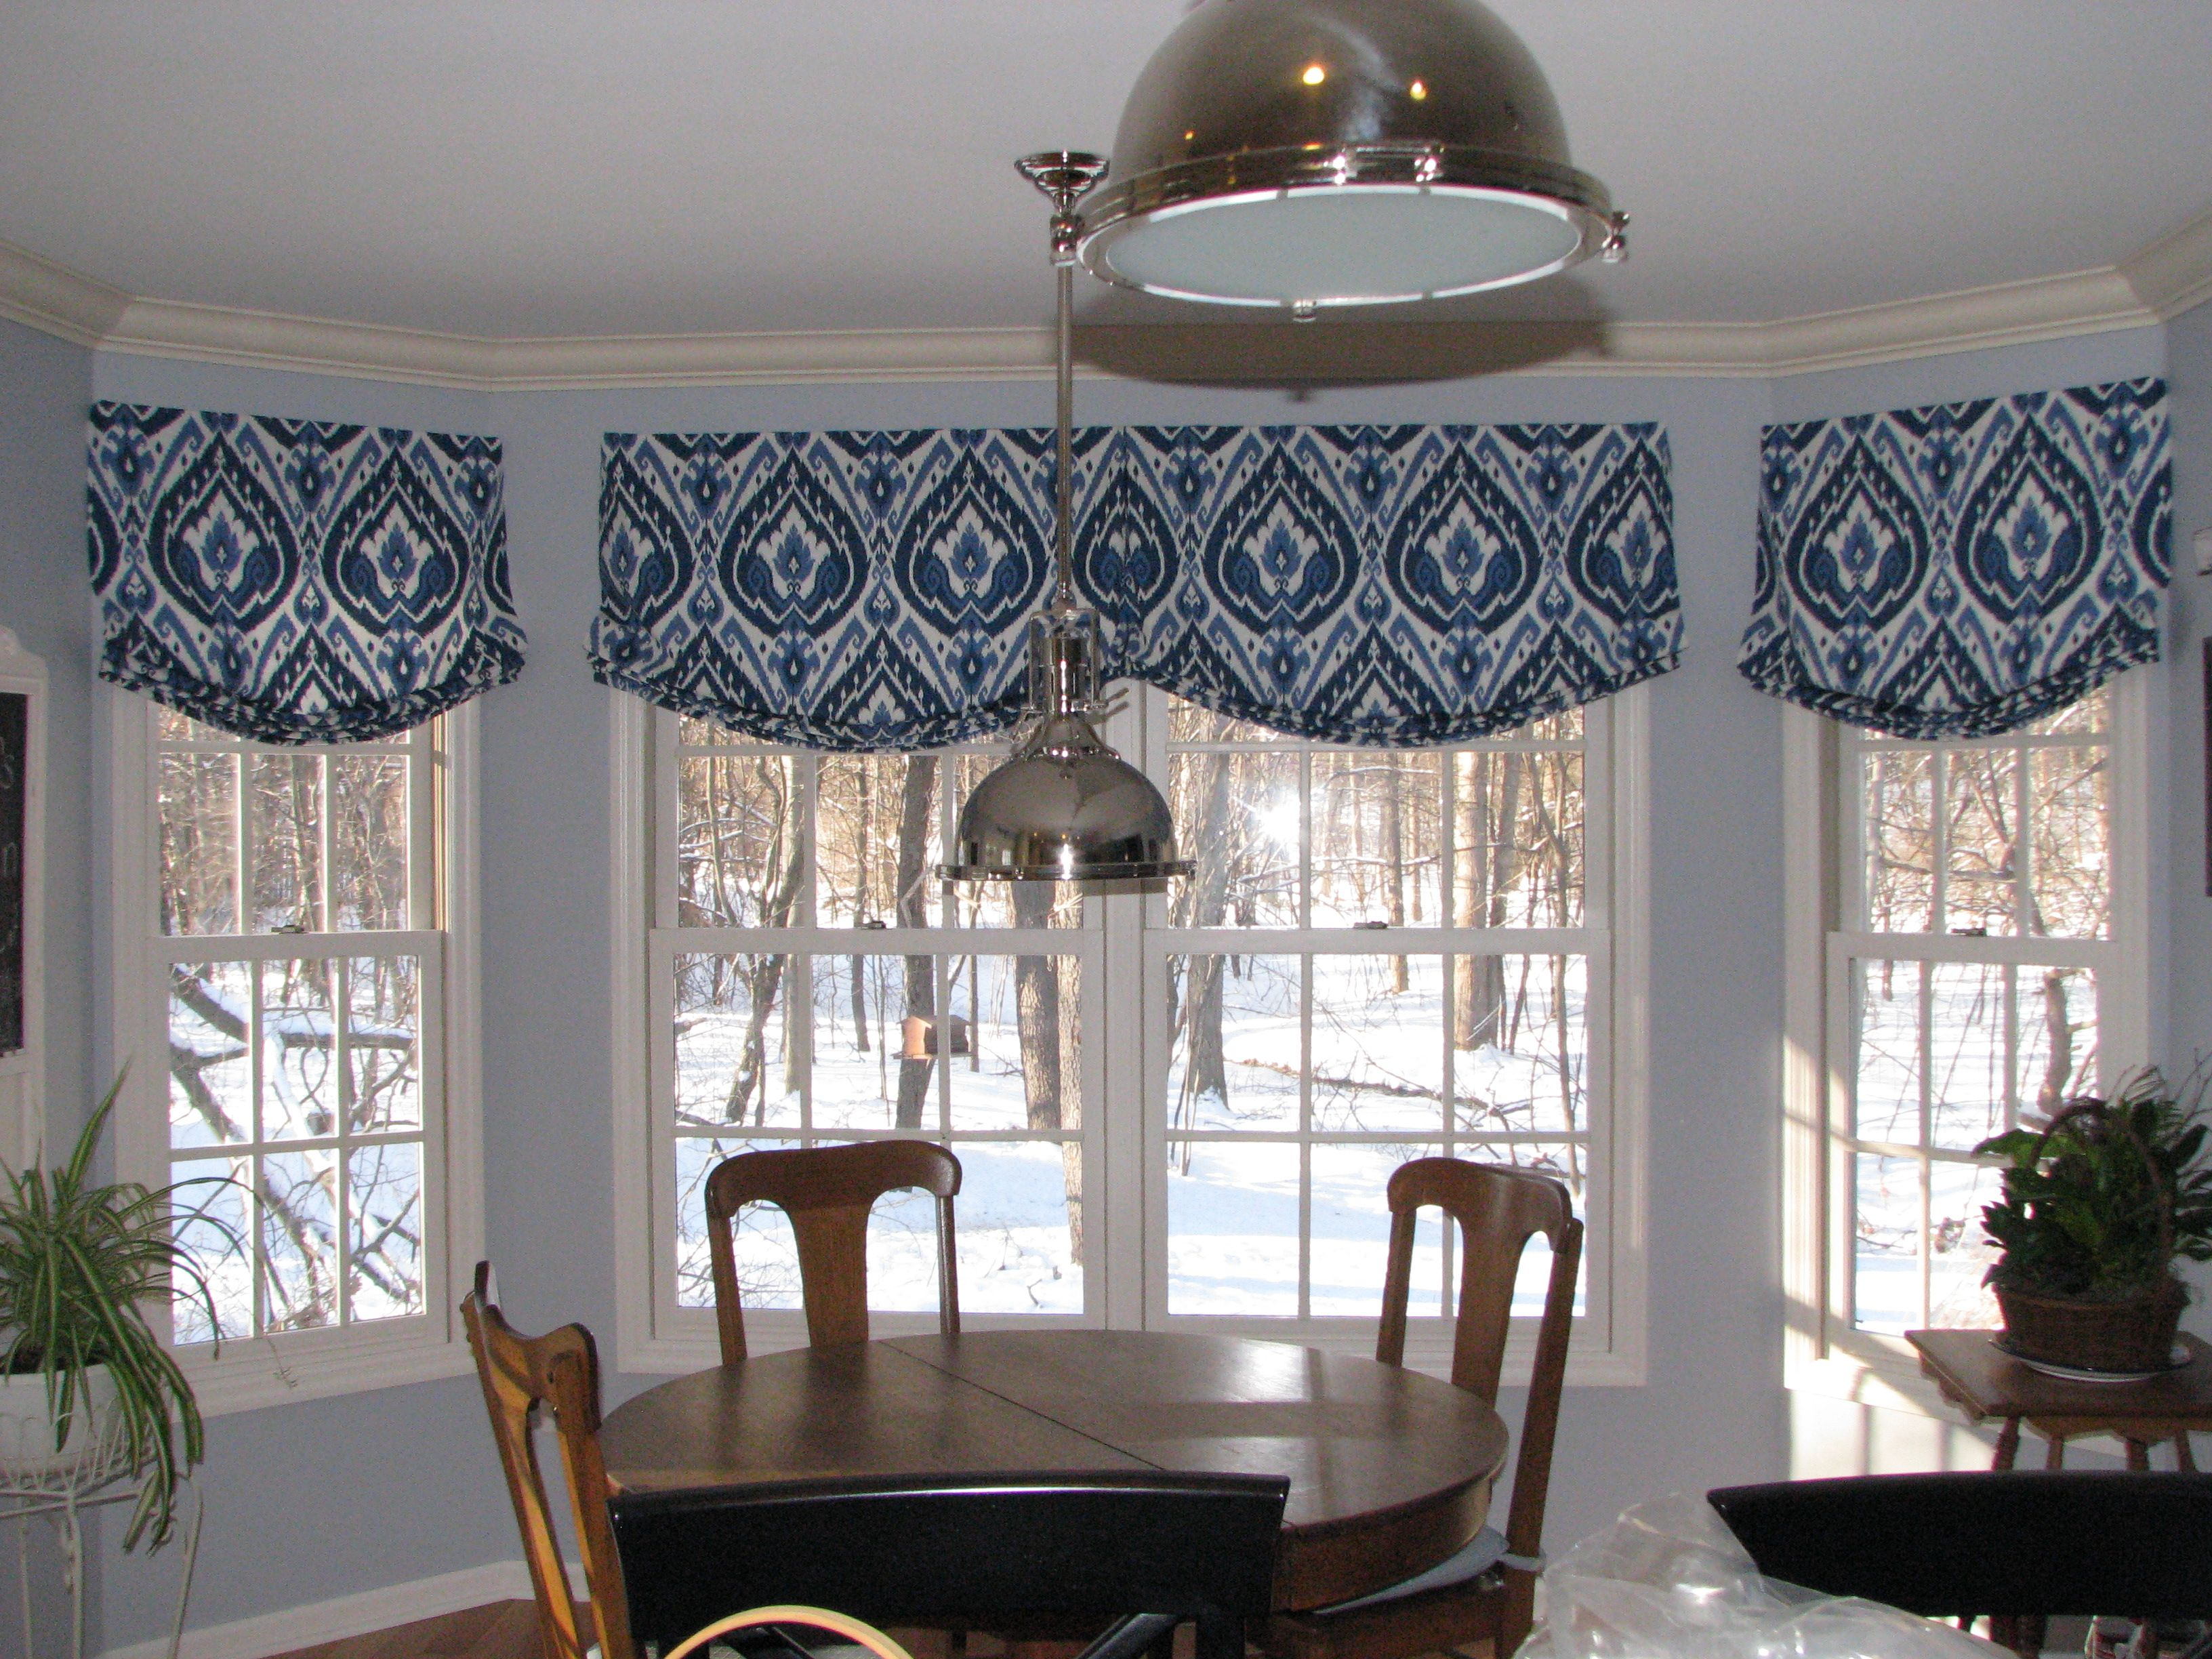 Relaxed Roman Shade Valance In Ultra Marine Ikat Pattern Creates A